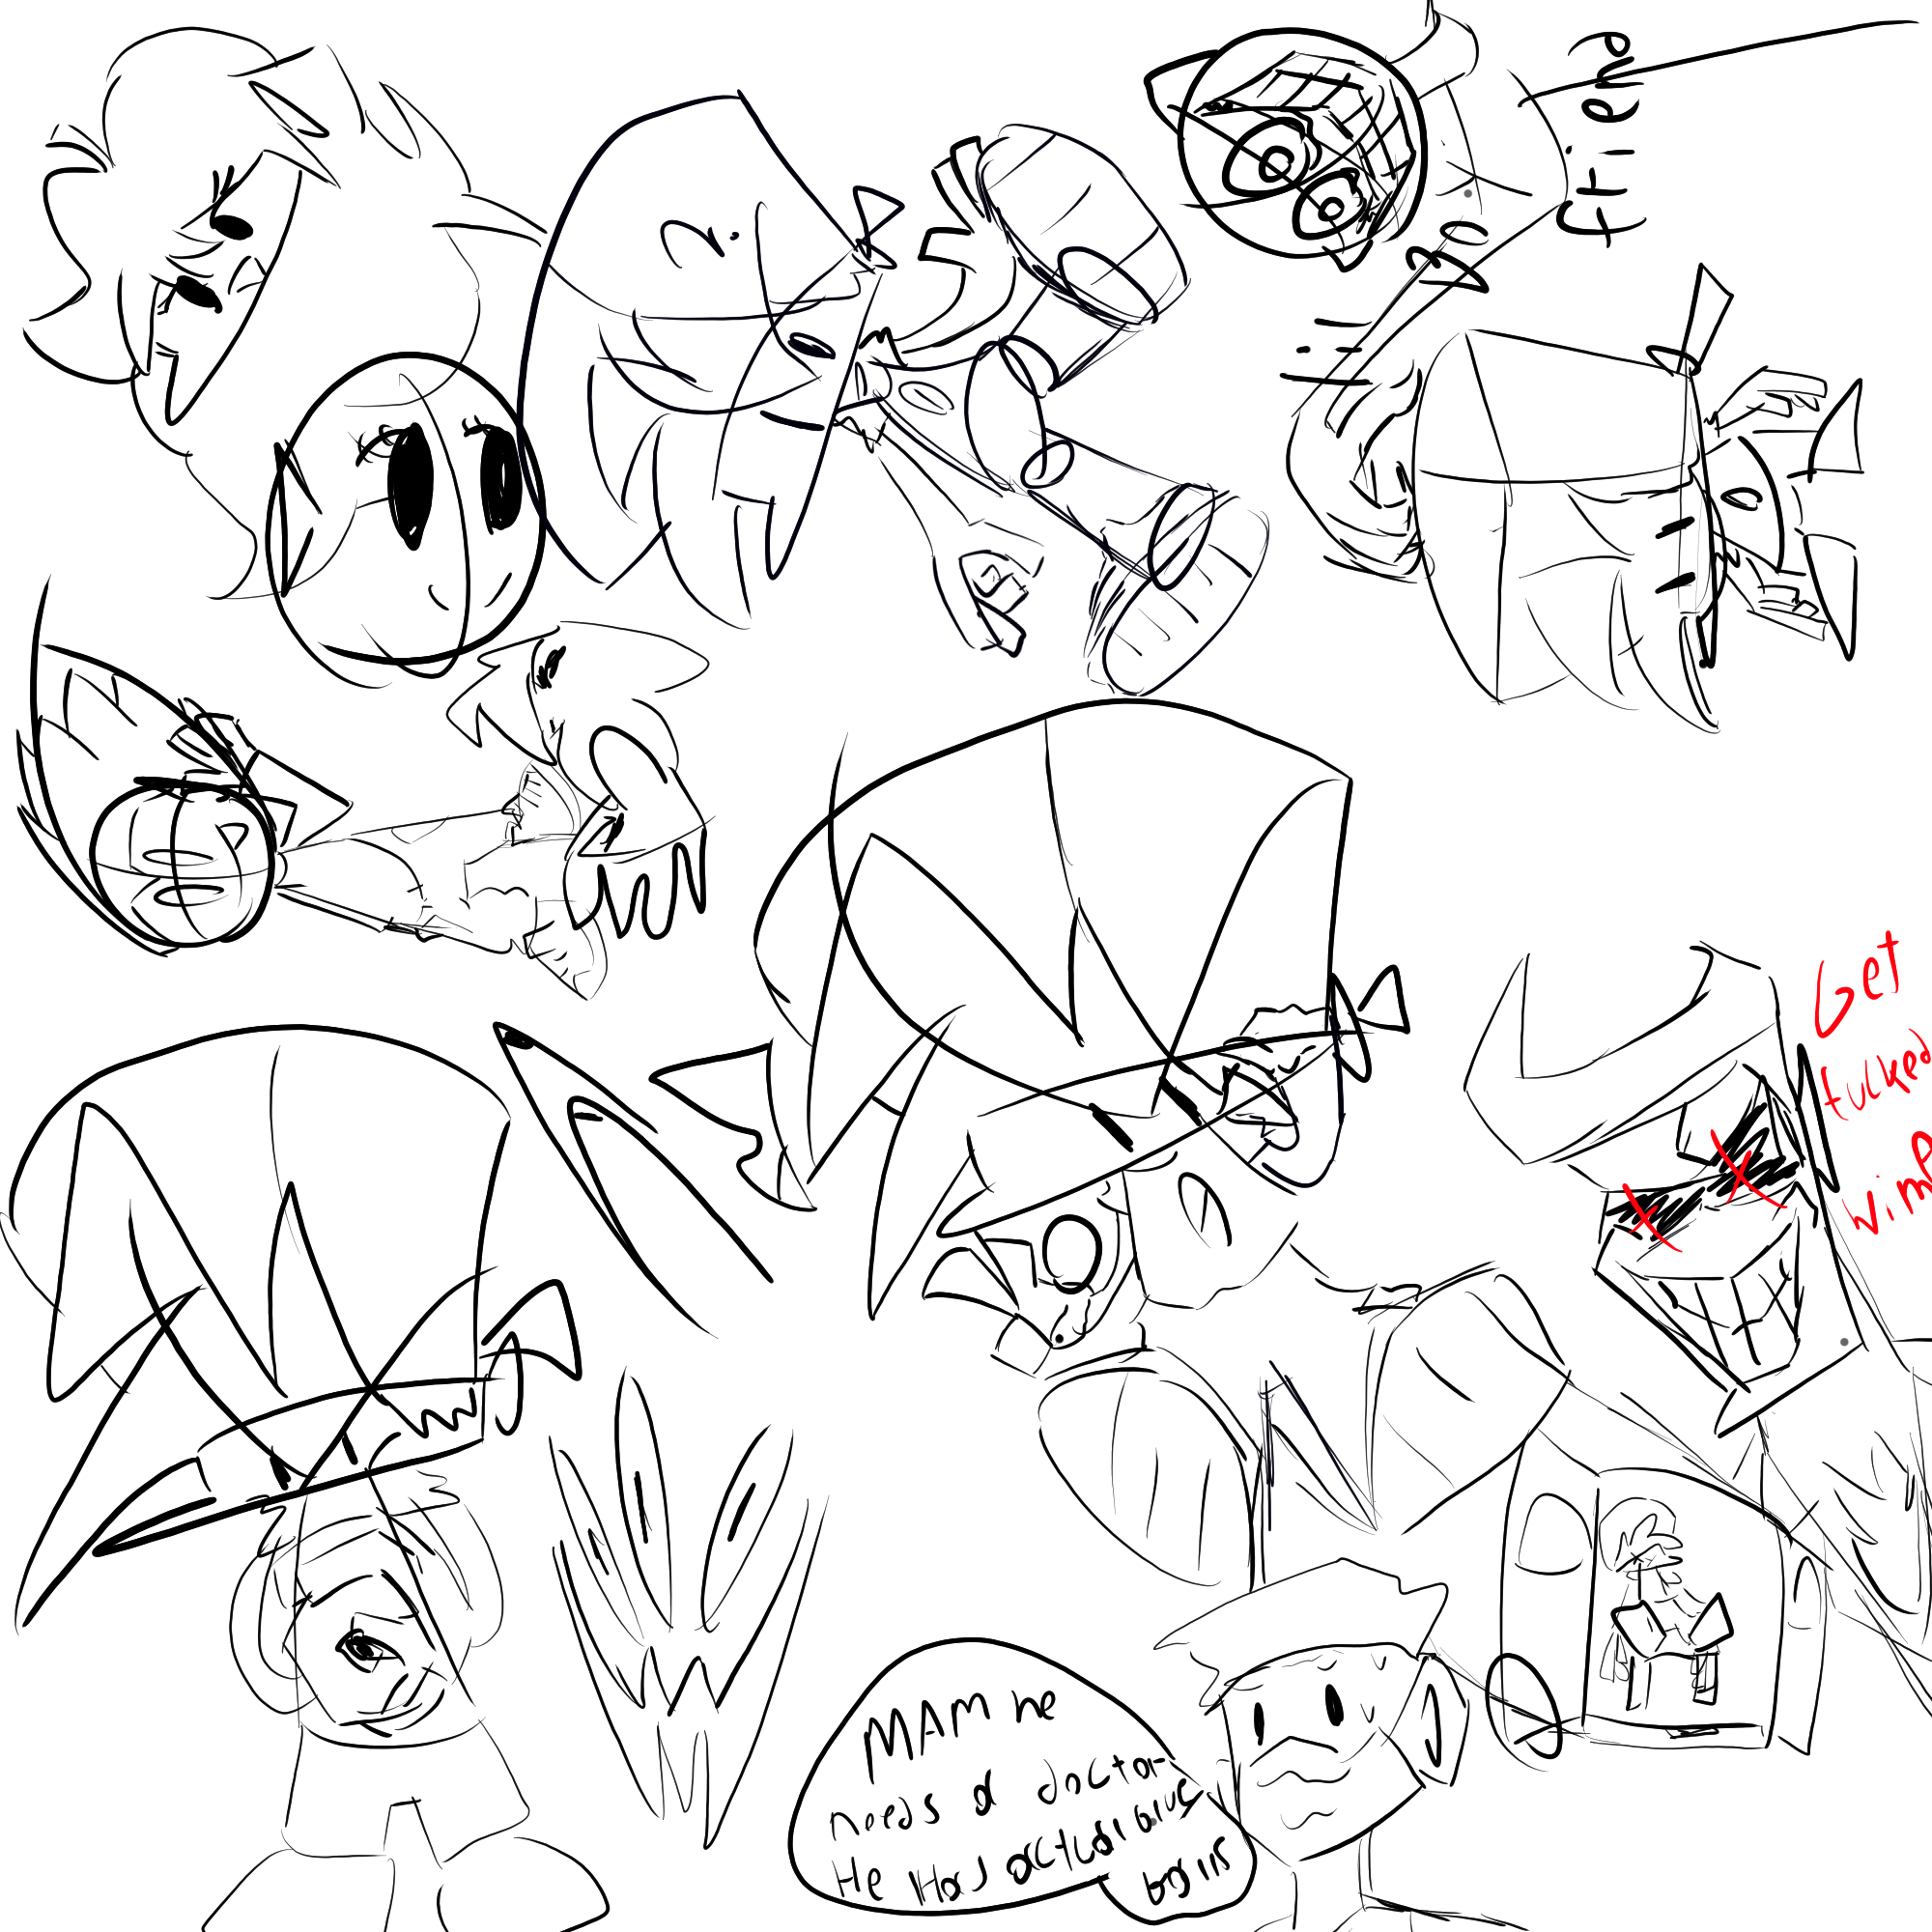 Some fnf sketches i drew